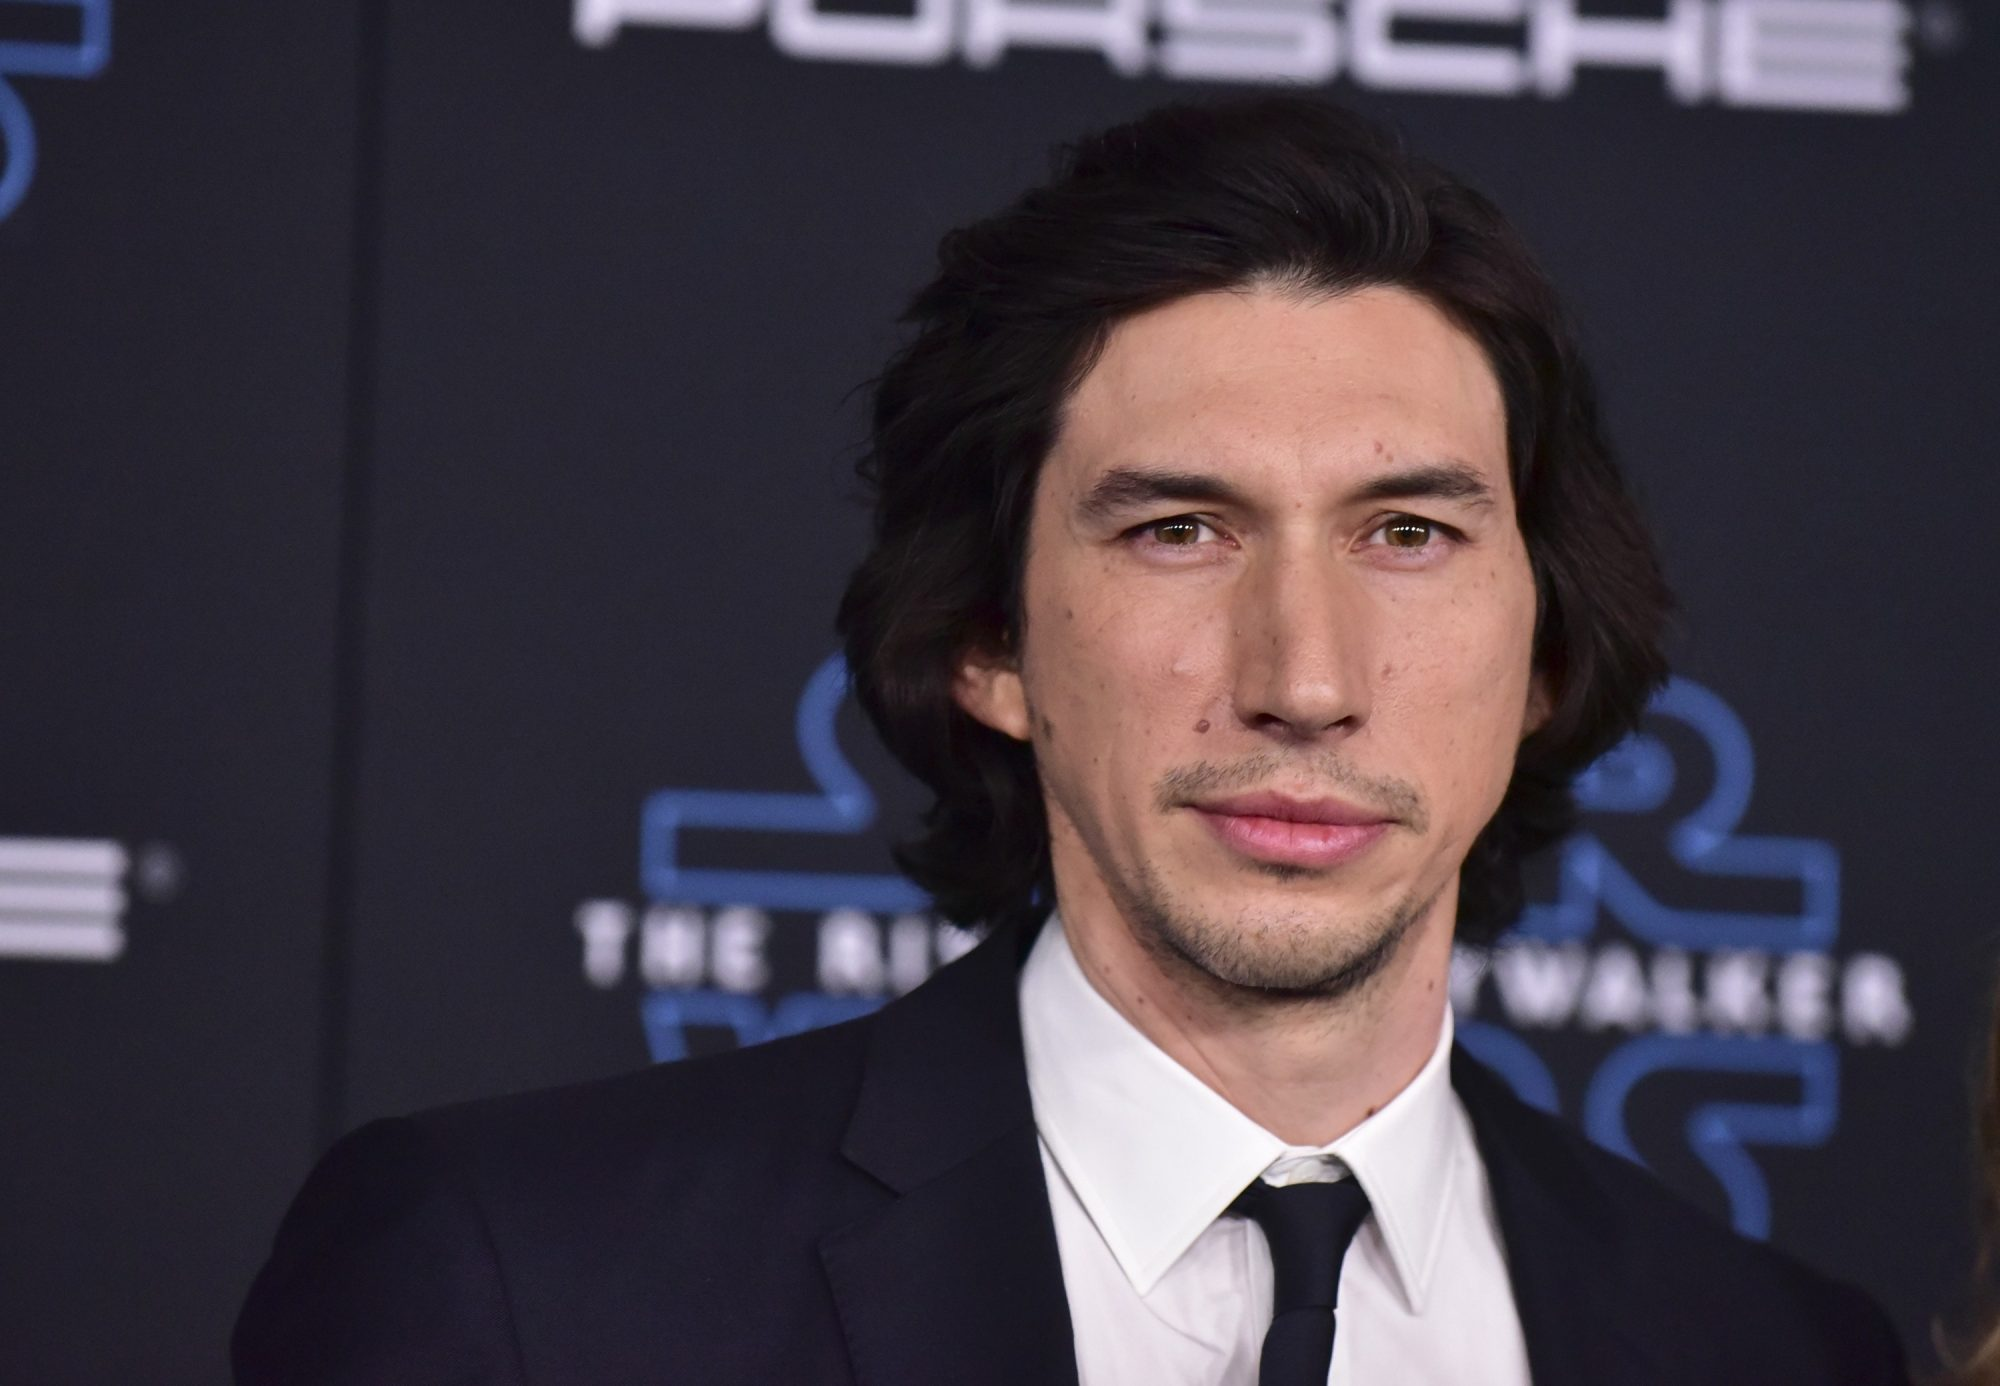 Adam Driver at the premiere for The Rise of Skywalker